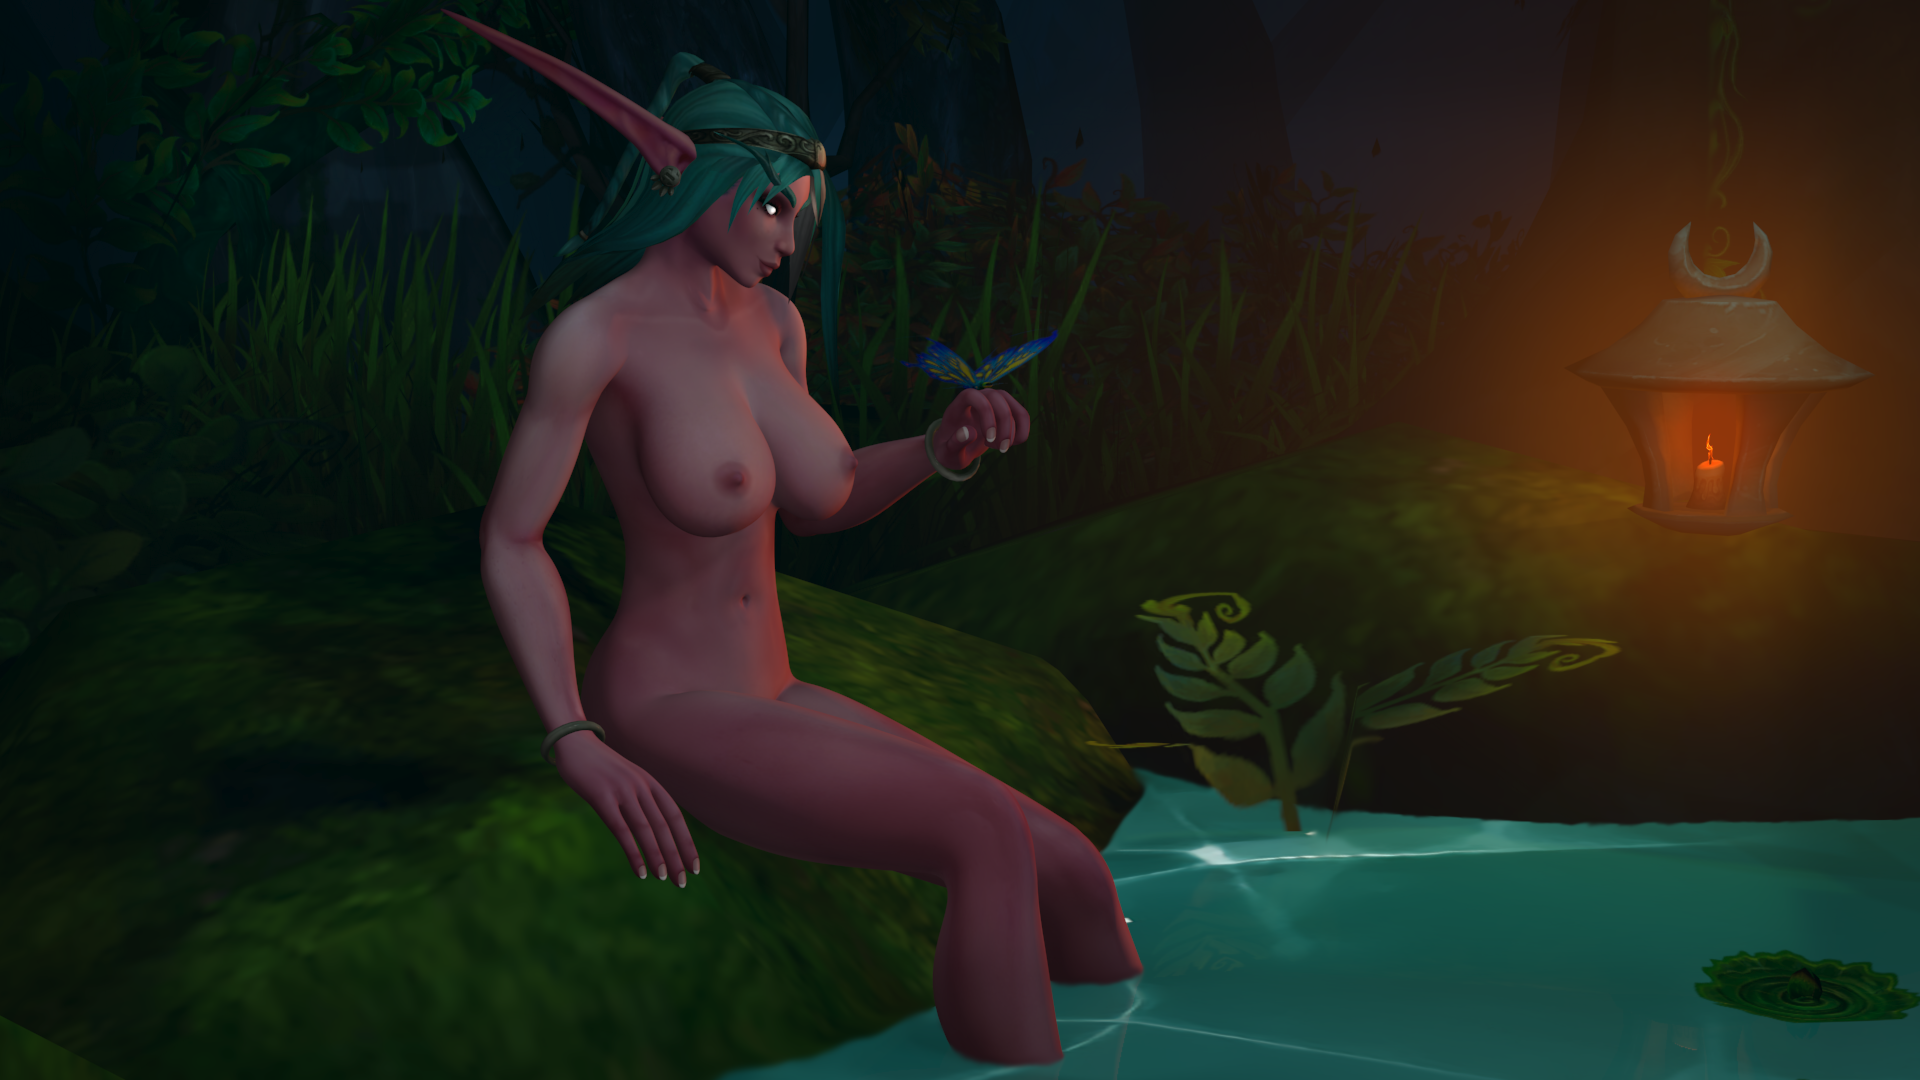 World of warcraft night elf nipple porno photo